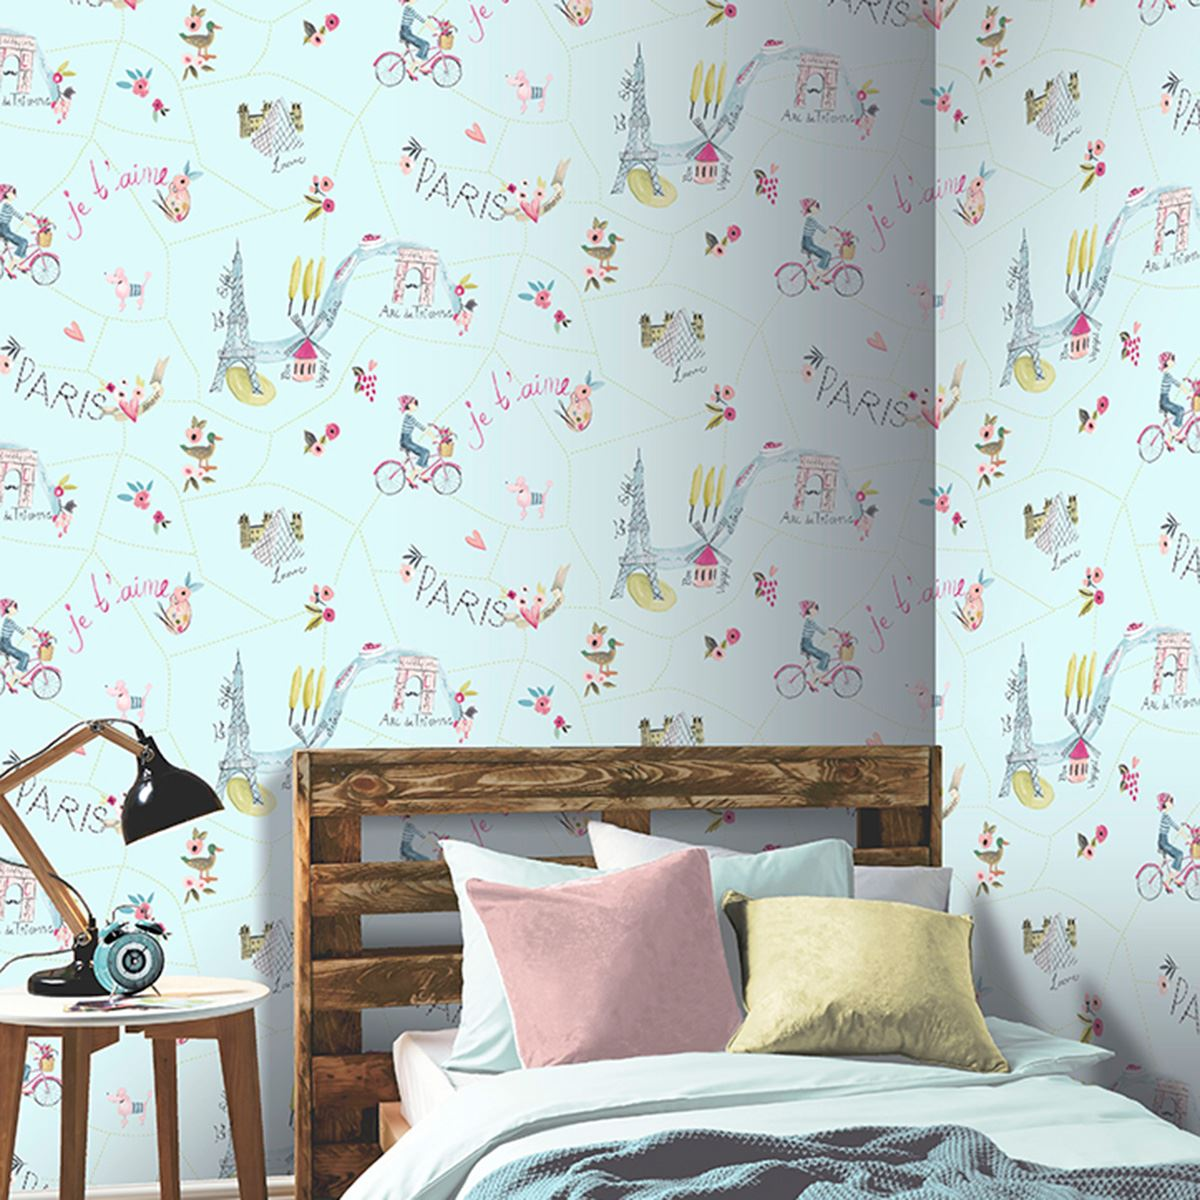 MERMAID UNICORN /& MORE ARTHOUSE GIRLS IMAGINE FUN /& GLITTER WALLPAPER